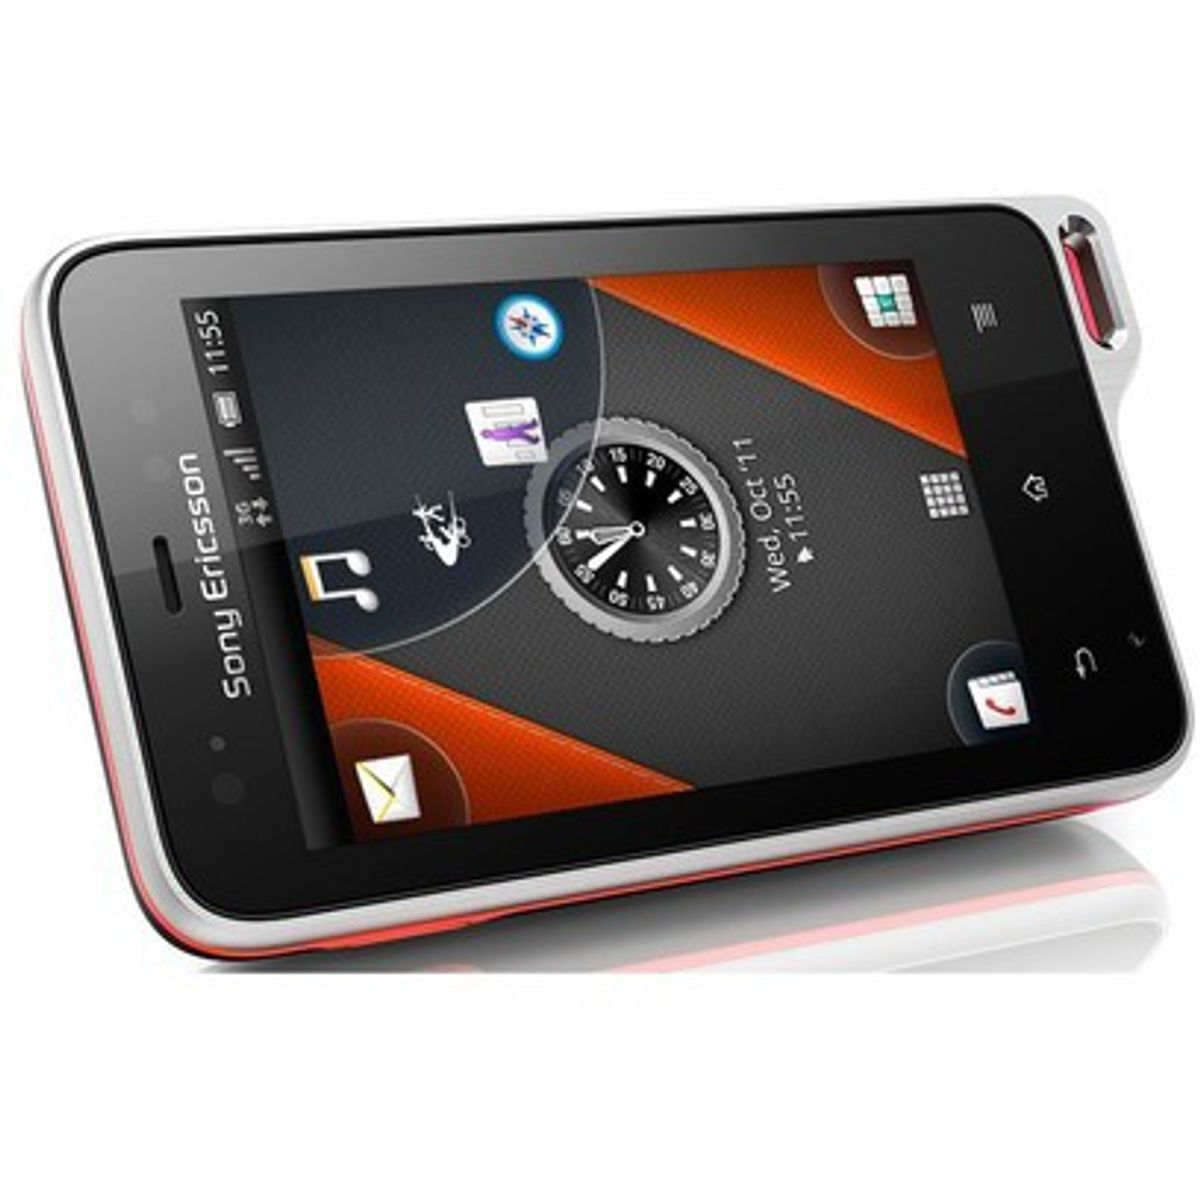 Sony Mobile Xperia Active ST17I